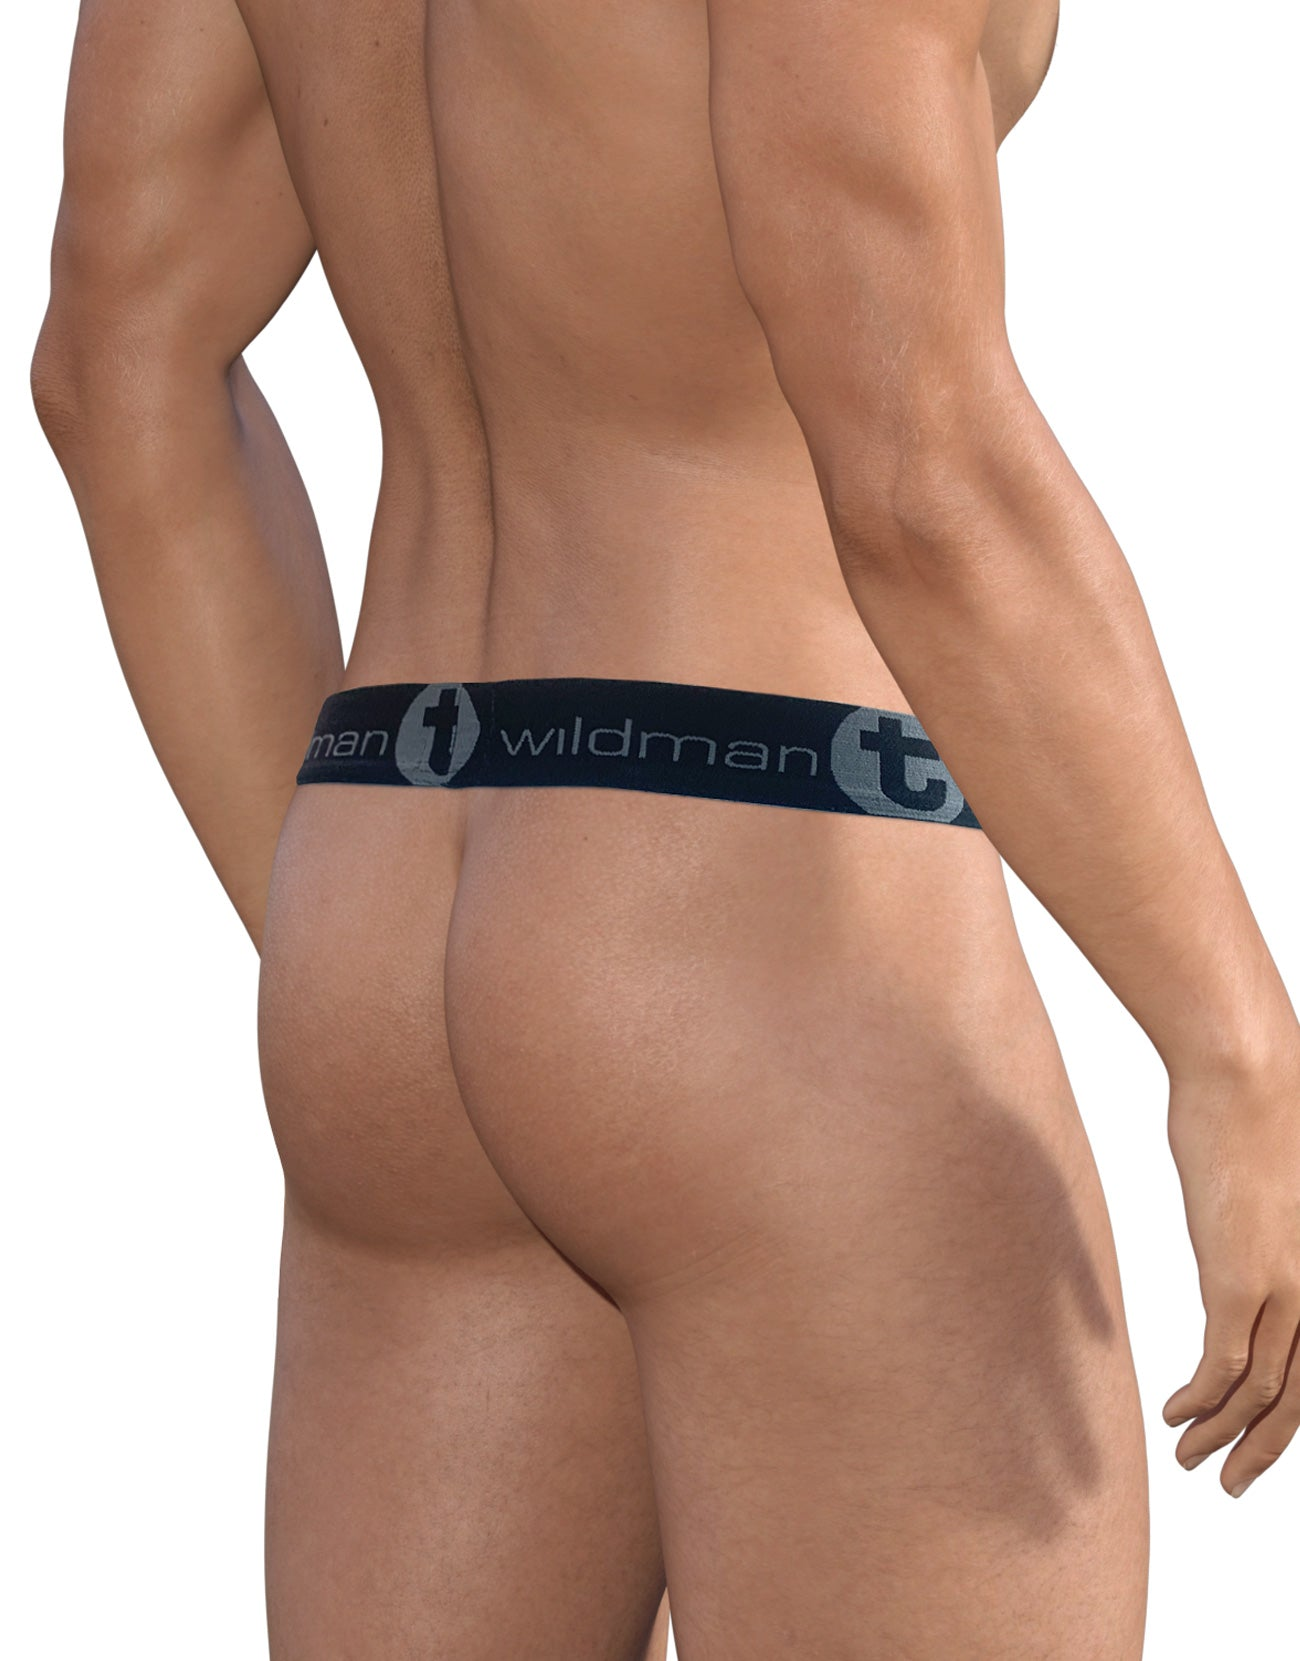 WildmanT Stretch Cotton Strapless Jock Big Boy Pouch Light Blue/Black